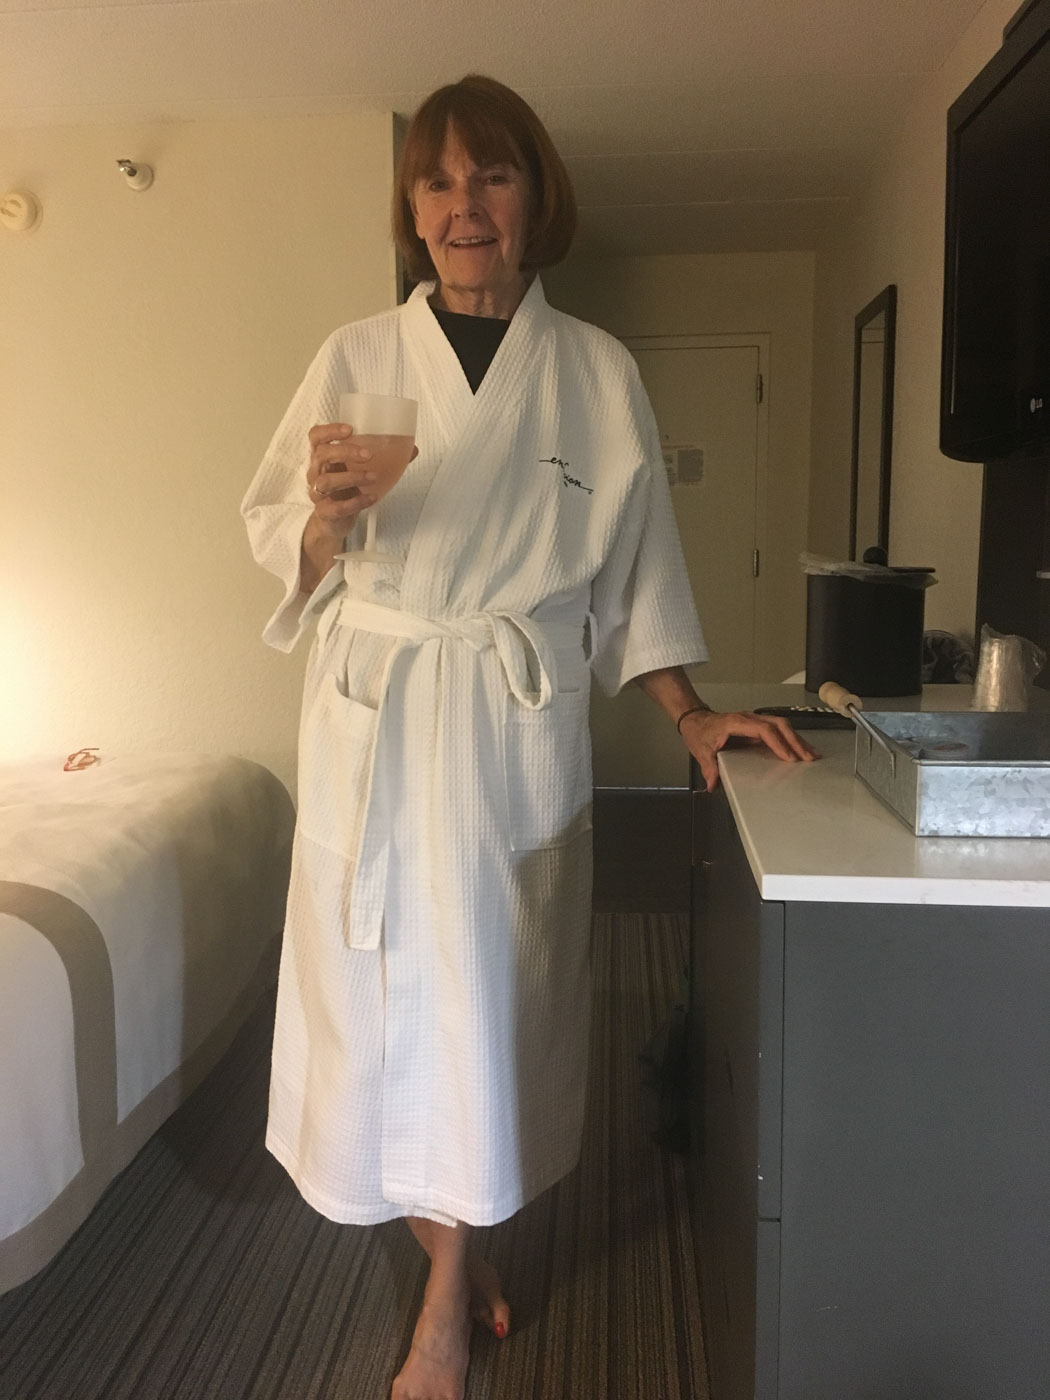 We even have robes!